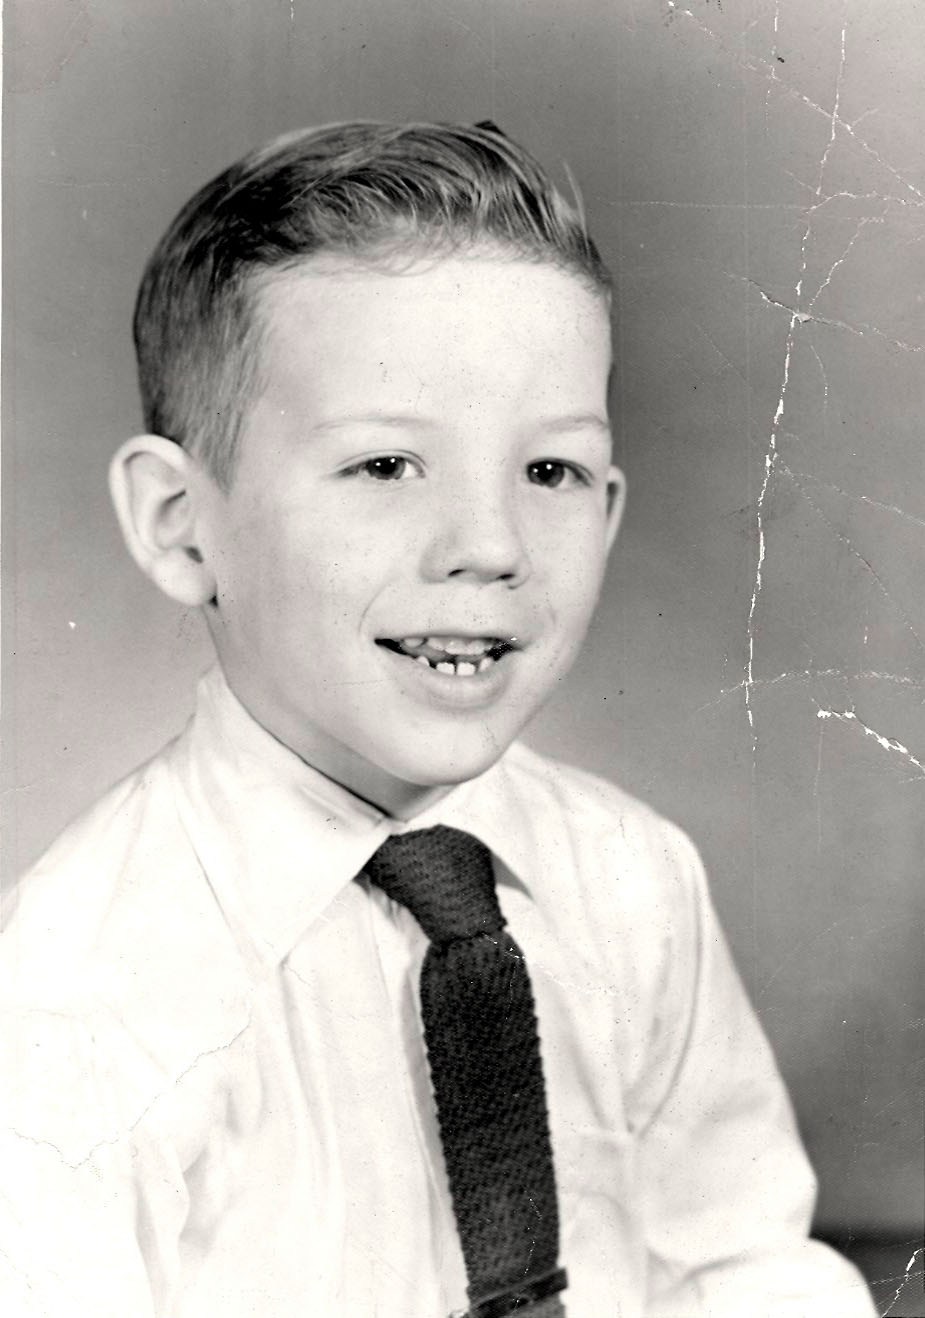 A very young me